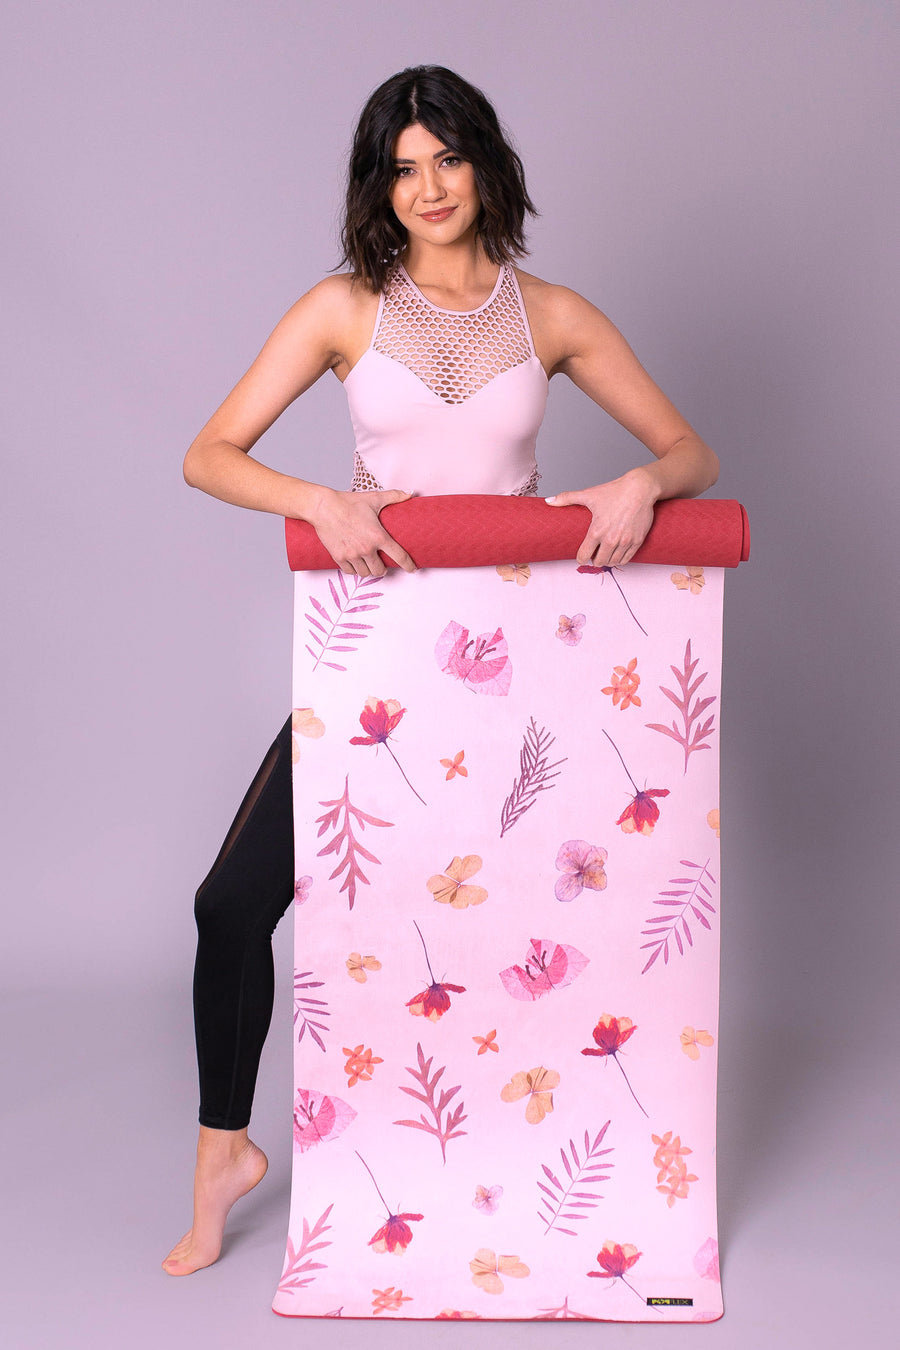 Pressed Flowers Vegan Suede Yoga Mat